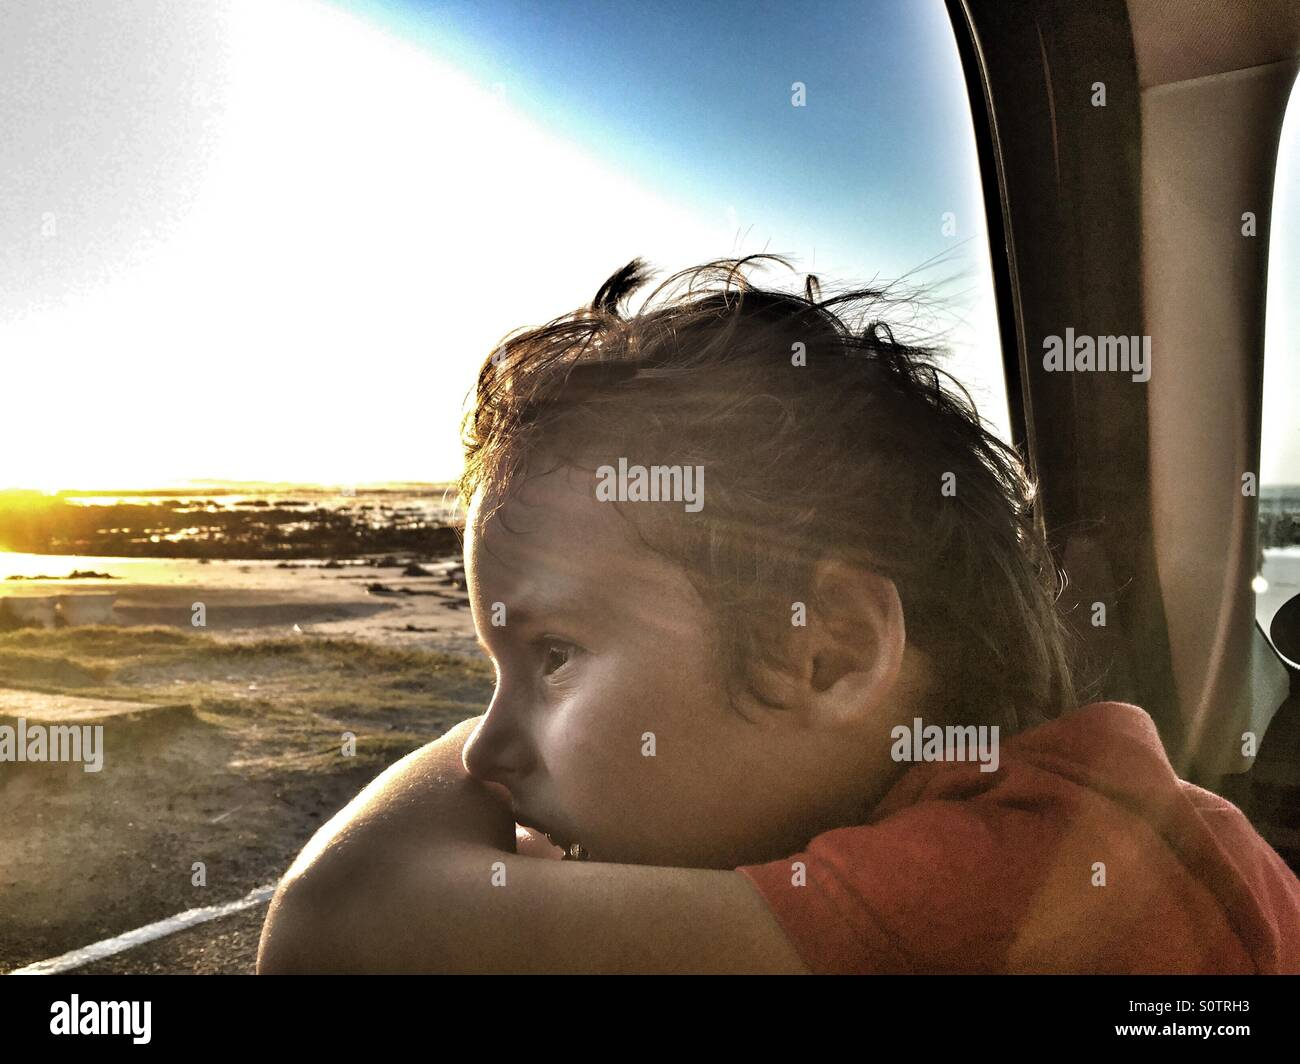 Boy looking out car window - Stock Image